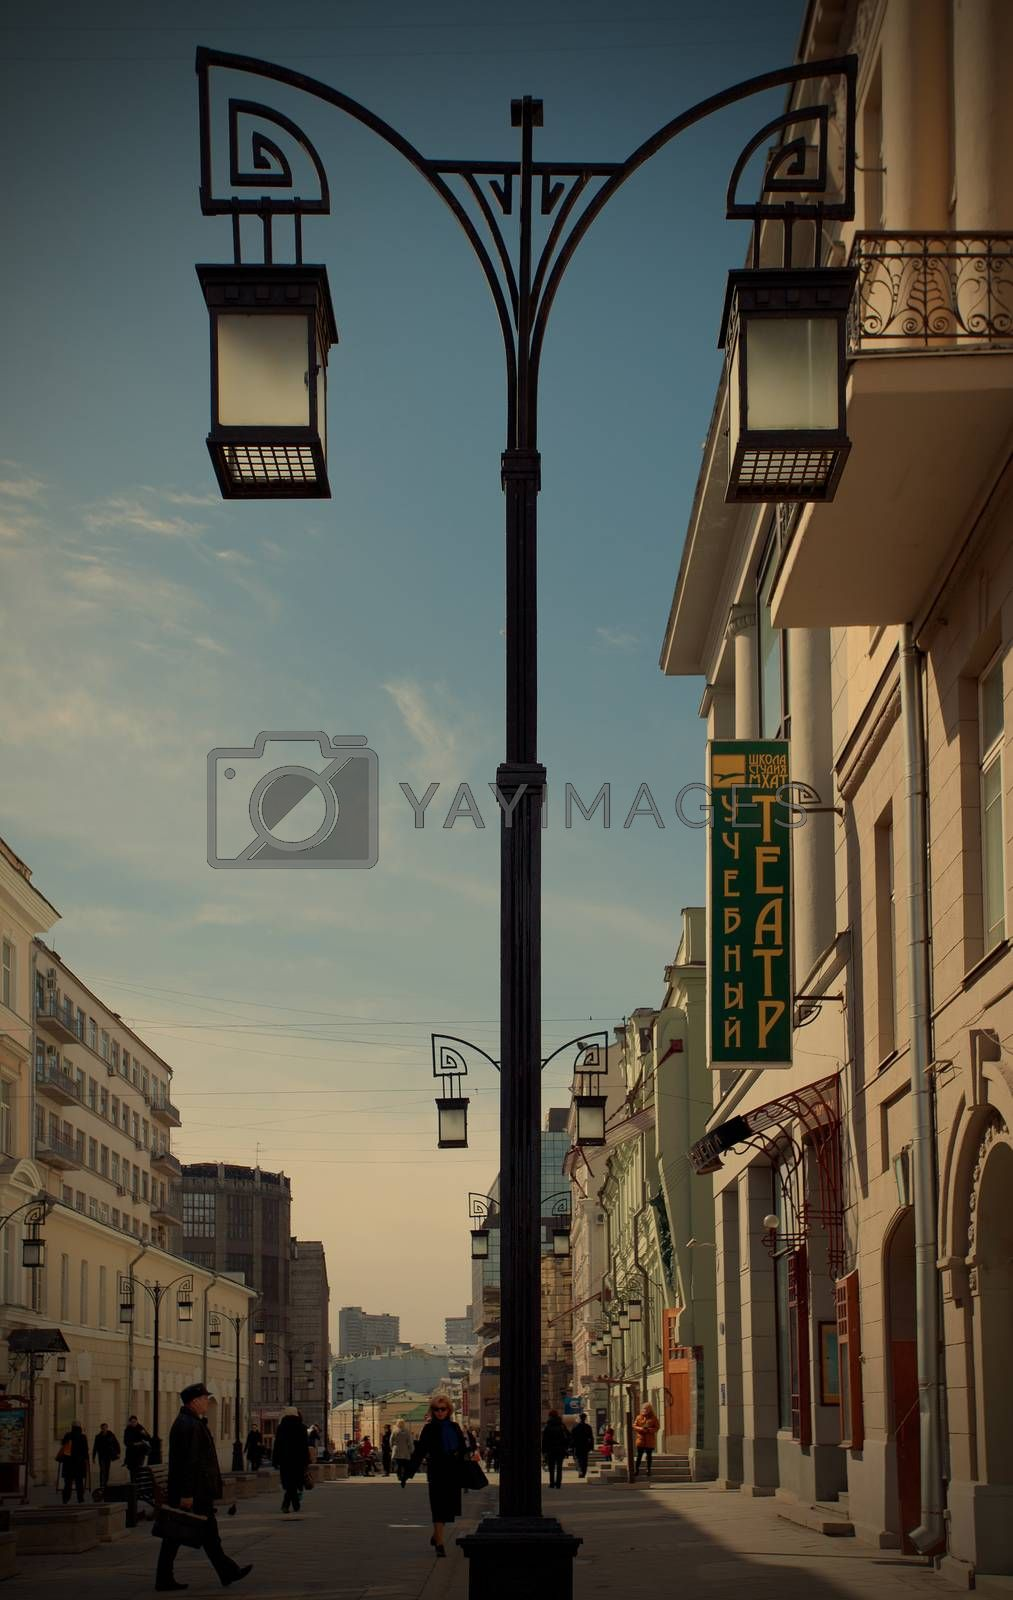 Moscow, Kamergersky lane at spring morning, 2014, april, instagram image style, editorial use only